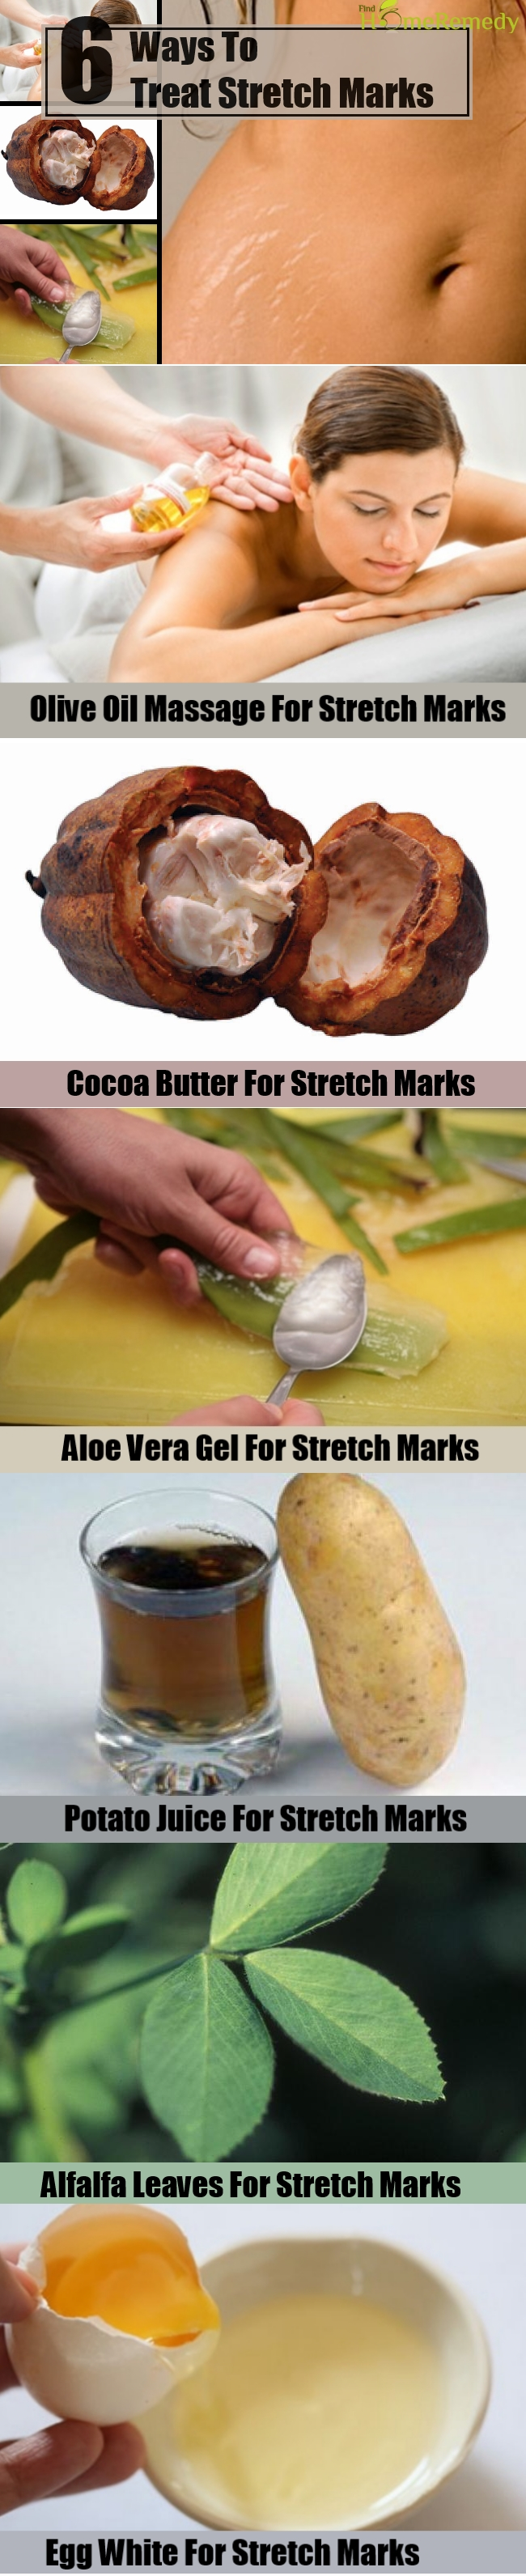 6 Ways To Treat Stretch Marks